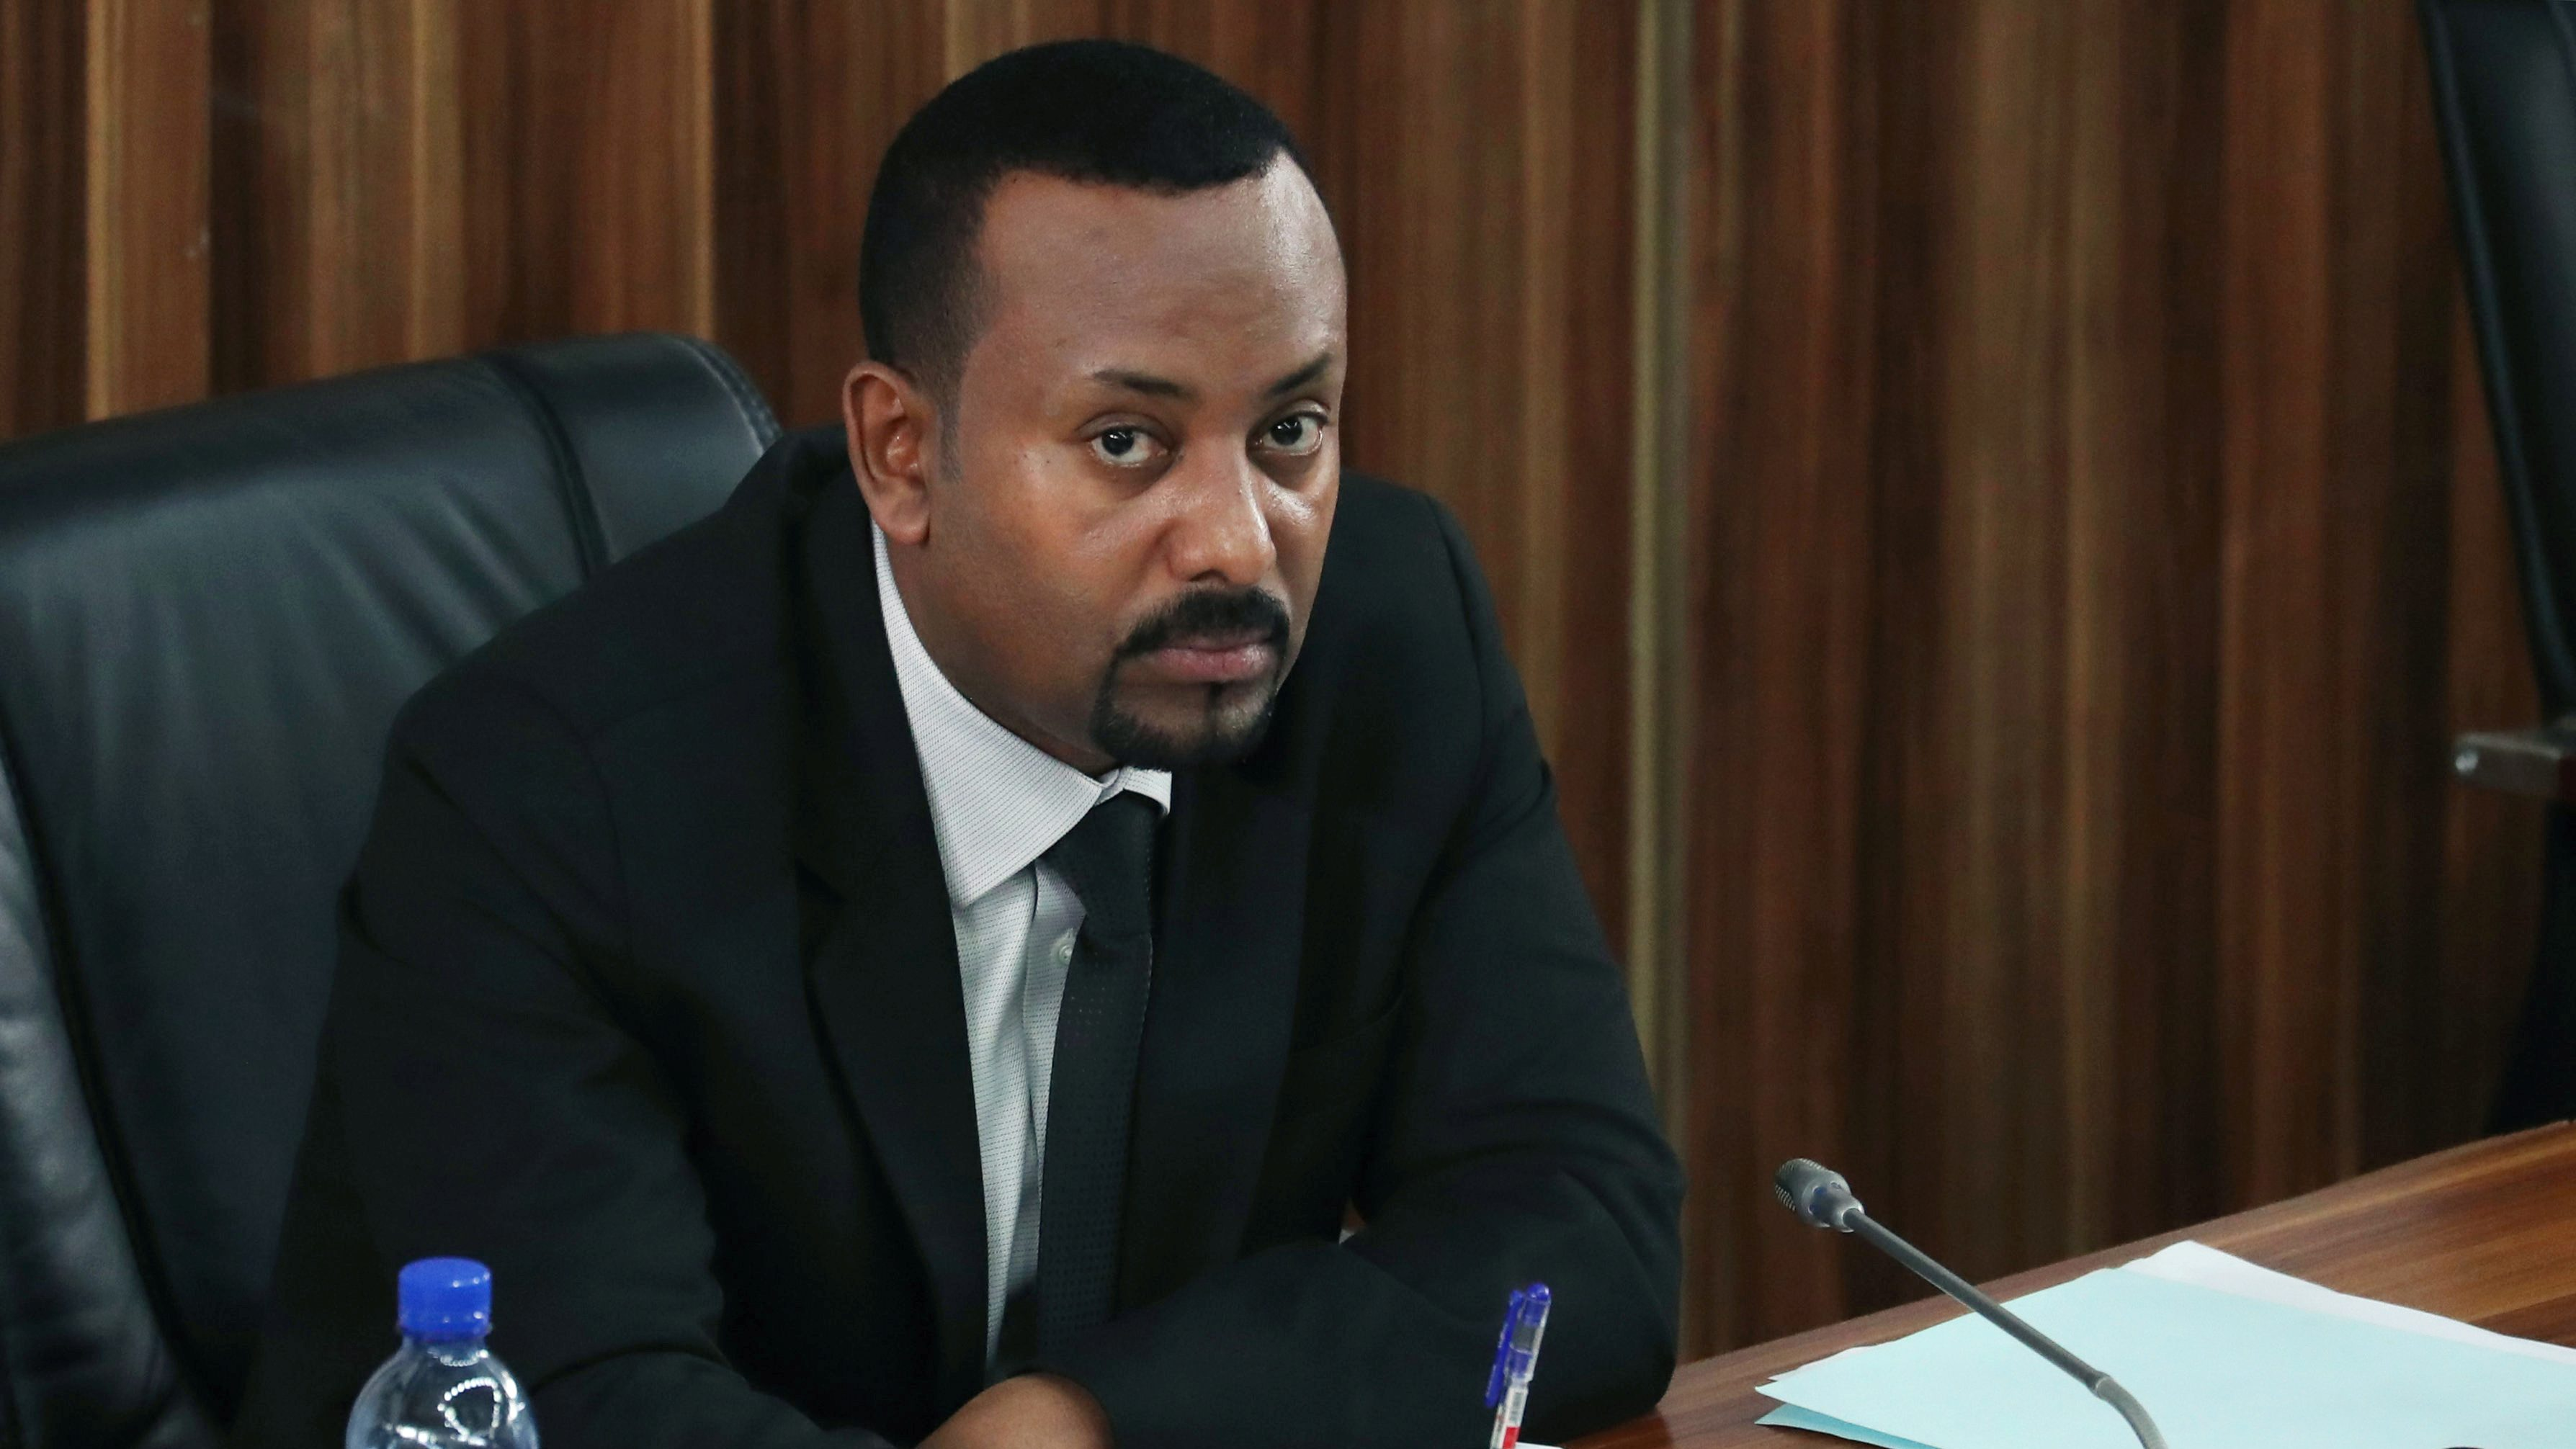 Ethiopians are losing faith in prime minister Abiy's promises for peace